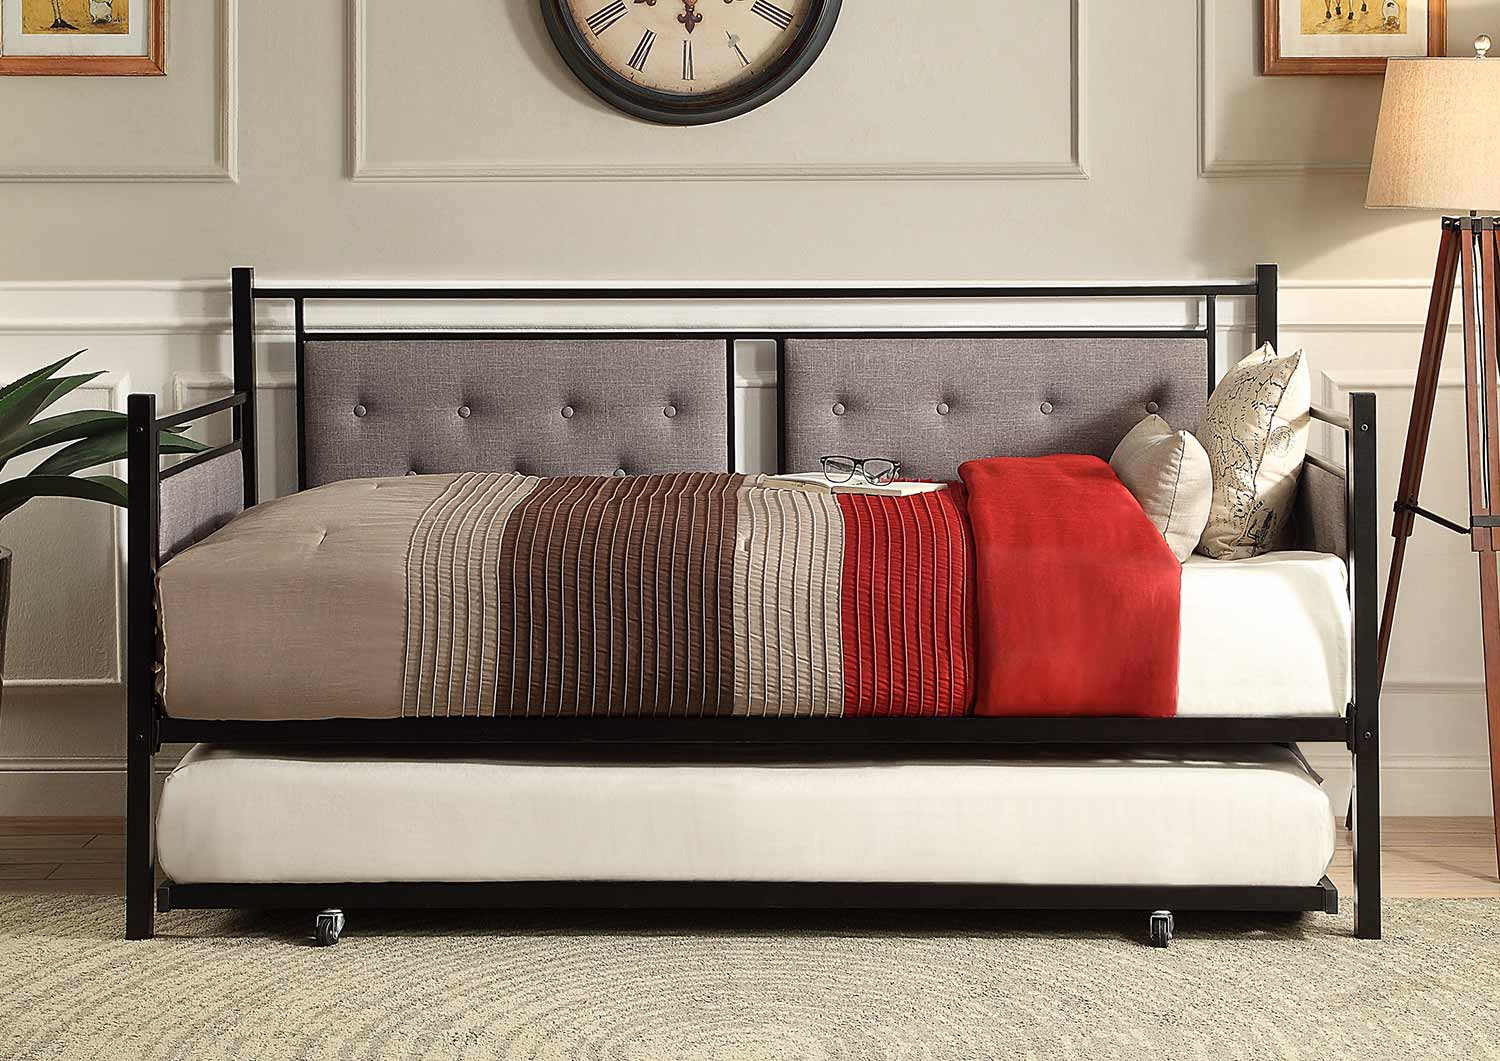 Homelegance Octavia Button Tufted Upholstered Metal Daybed with Trundle - Black-Grey